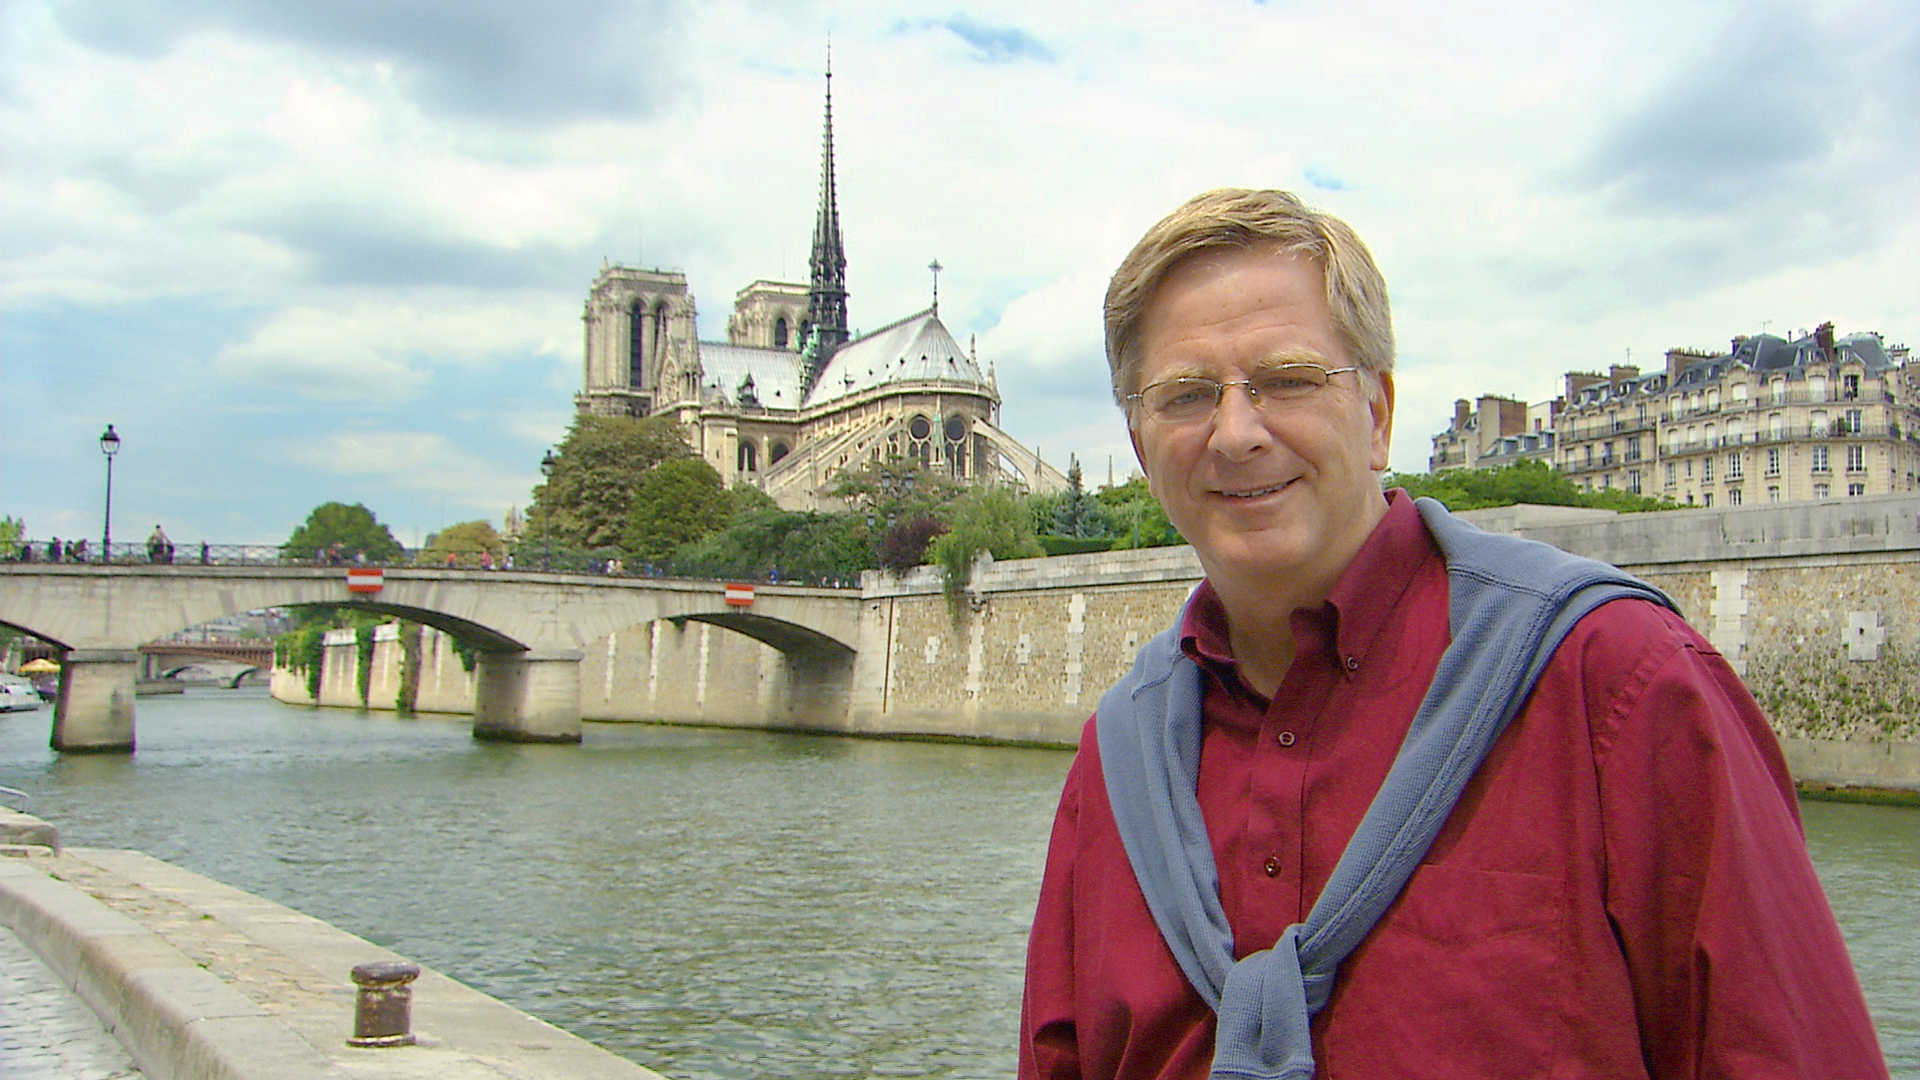 Paris: Rick Steves and Notre Dame